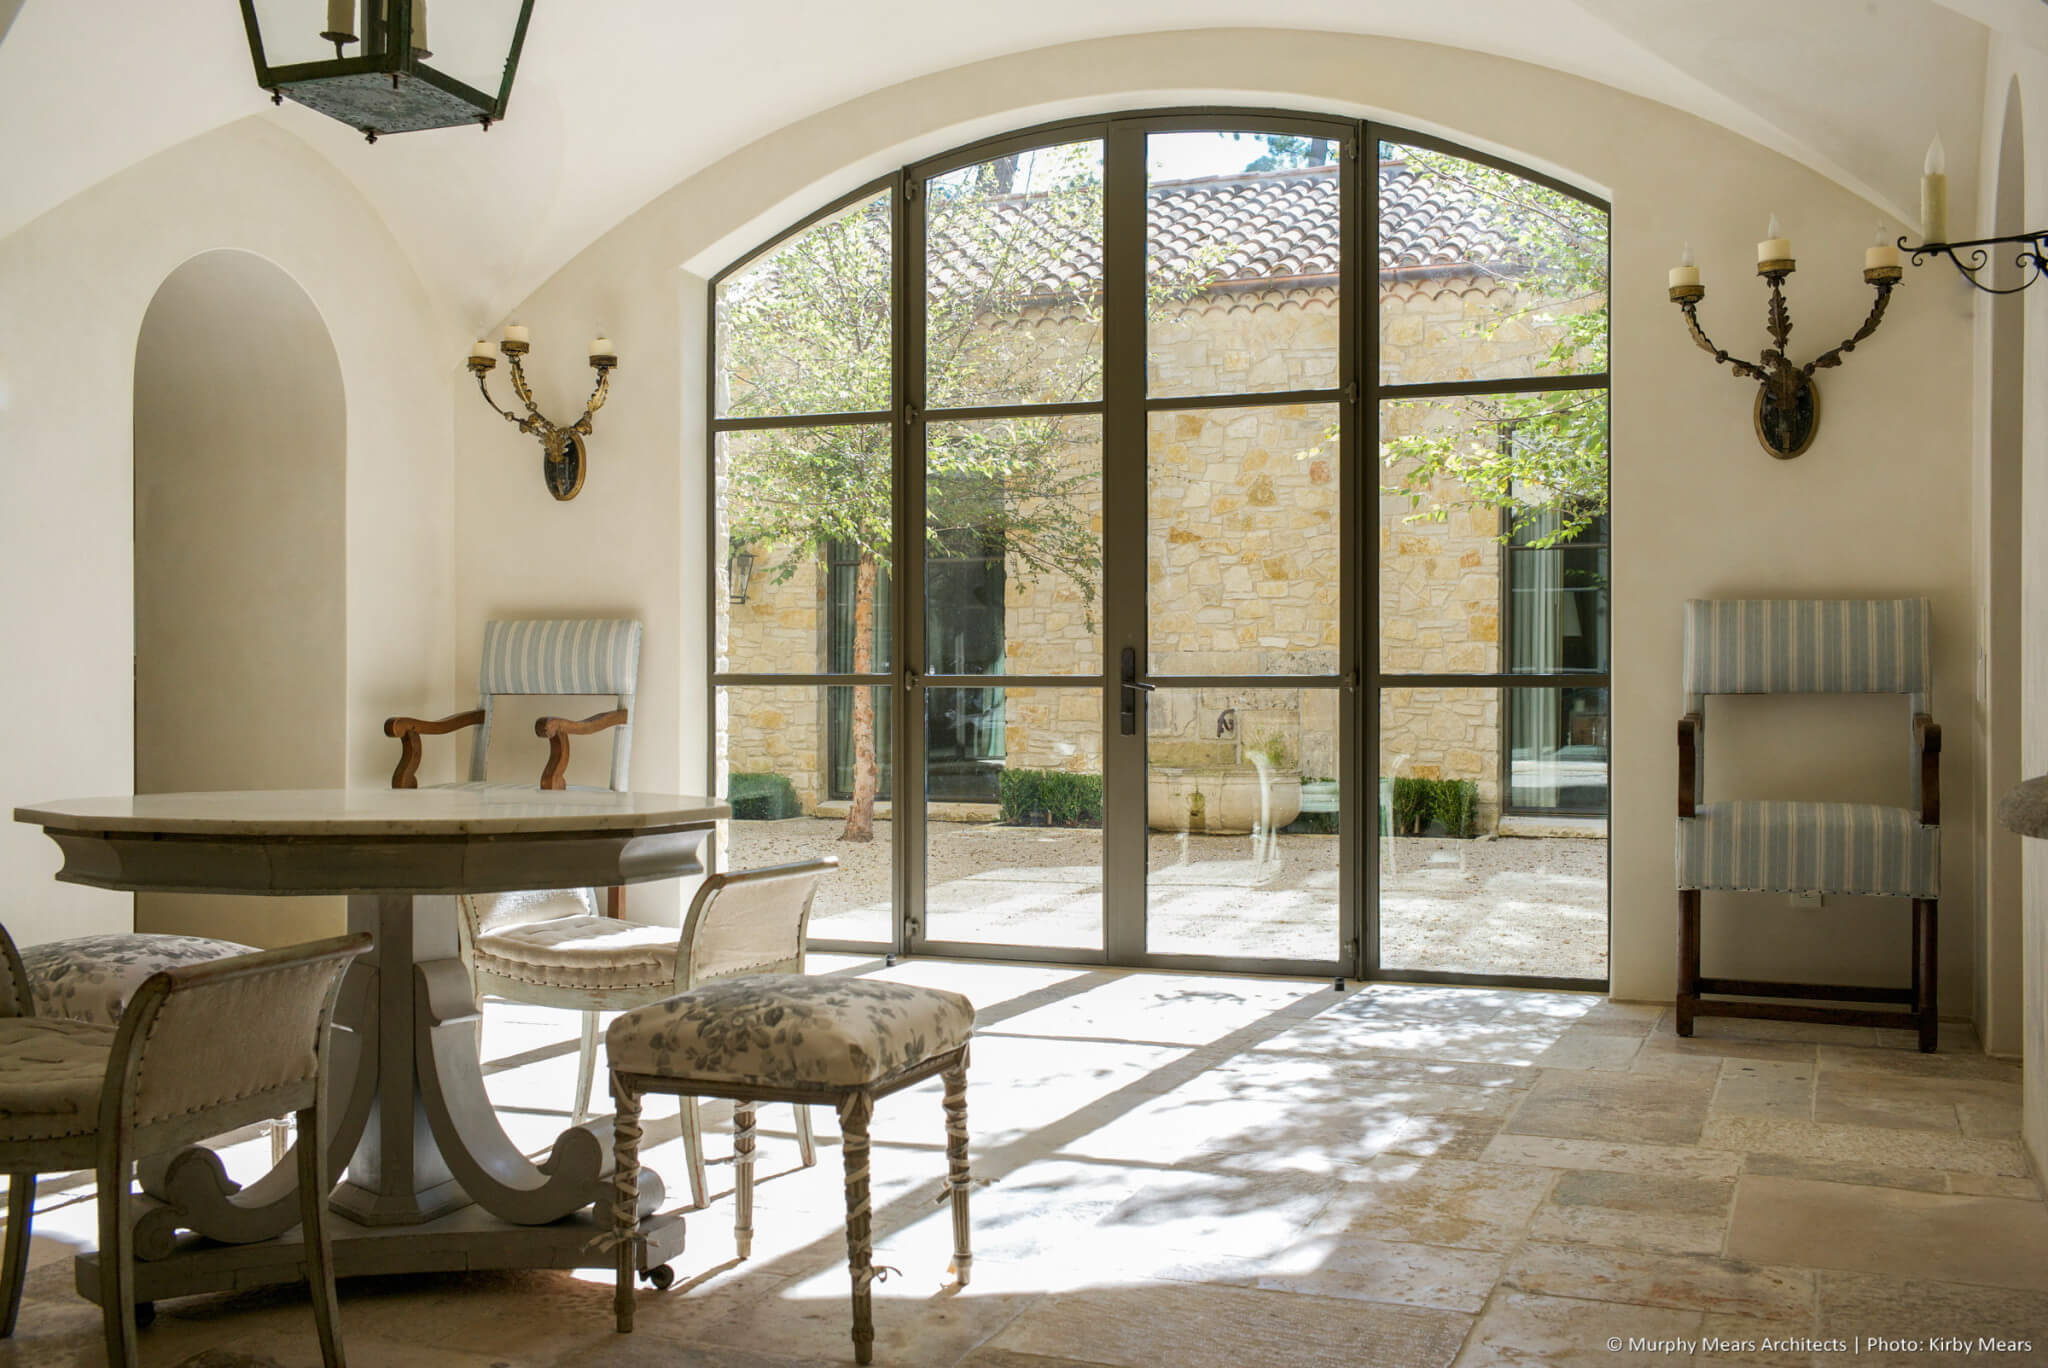 Front entry hall with random versaillles pattern reclaimed stone floor, and interior courtyard beyond.